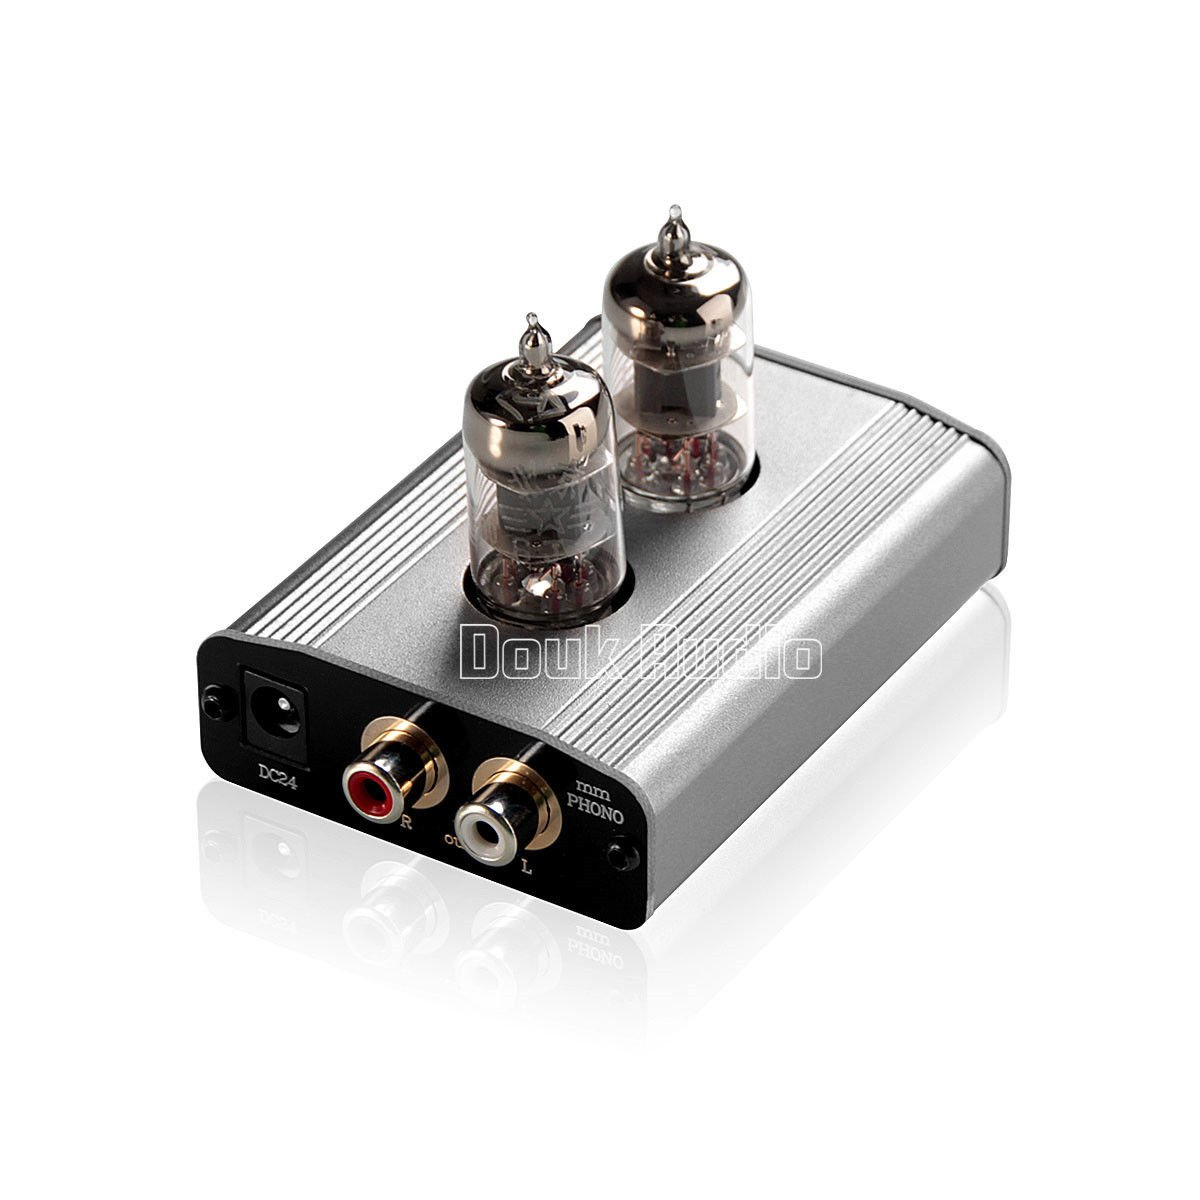 Douk Audio 6J1 Tube Phono Preamp MM RIAA Turntable Vinyl LP Record Player HiFi Class A Preamplifier by Douk Audio